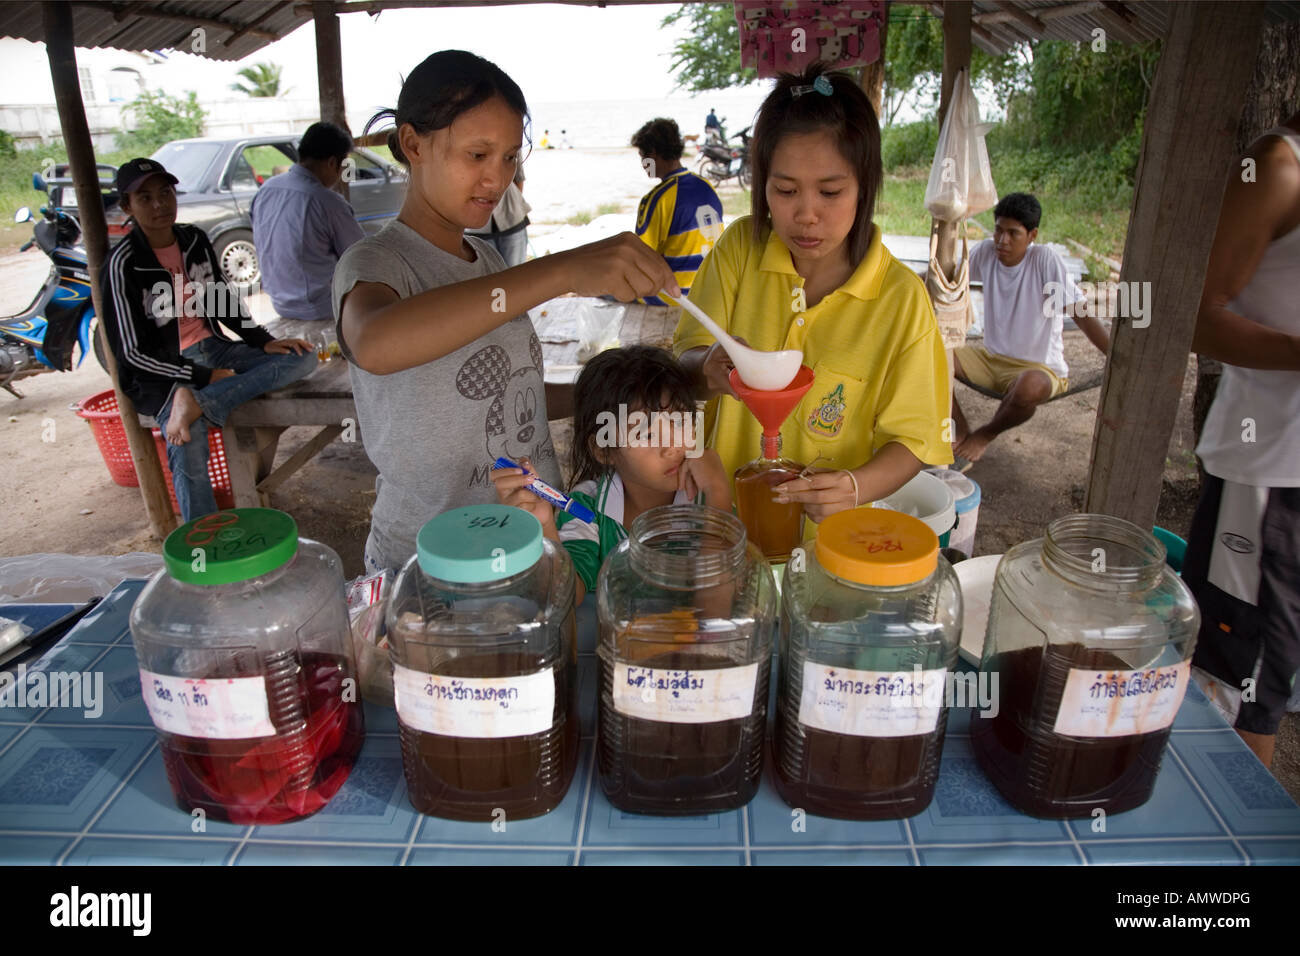 road side stall selling a drink mixed from rum and fruit juice, on the Phala Beach road near Rayong Thailand - Stock Image